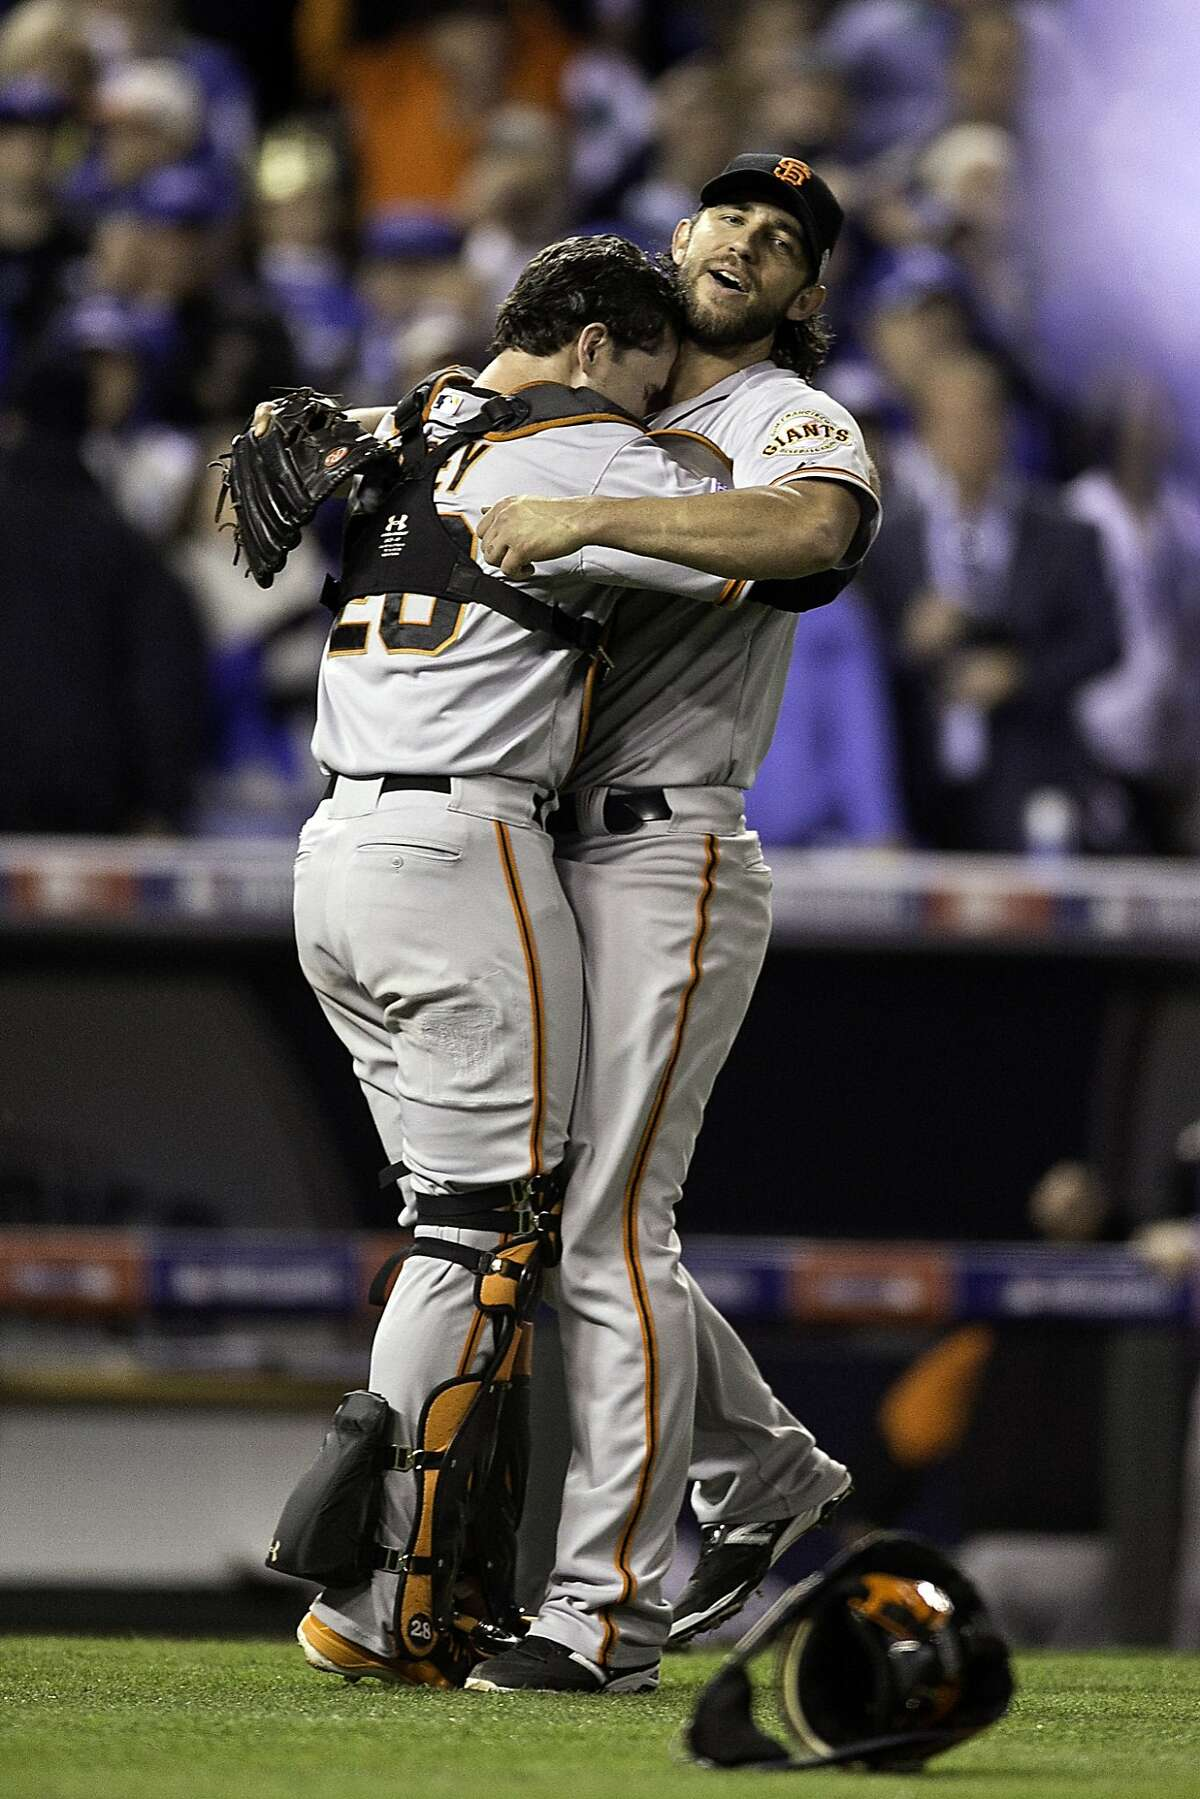 San Francisco Giants' Madison Bumgarner and Buster Posey celebrate after Game 7 of the World Series at Kauffman Stadium on Wednesday, Oct. 29, 2014 in Kansas City, Mo.